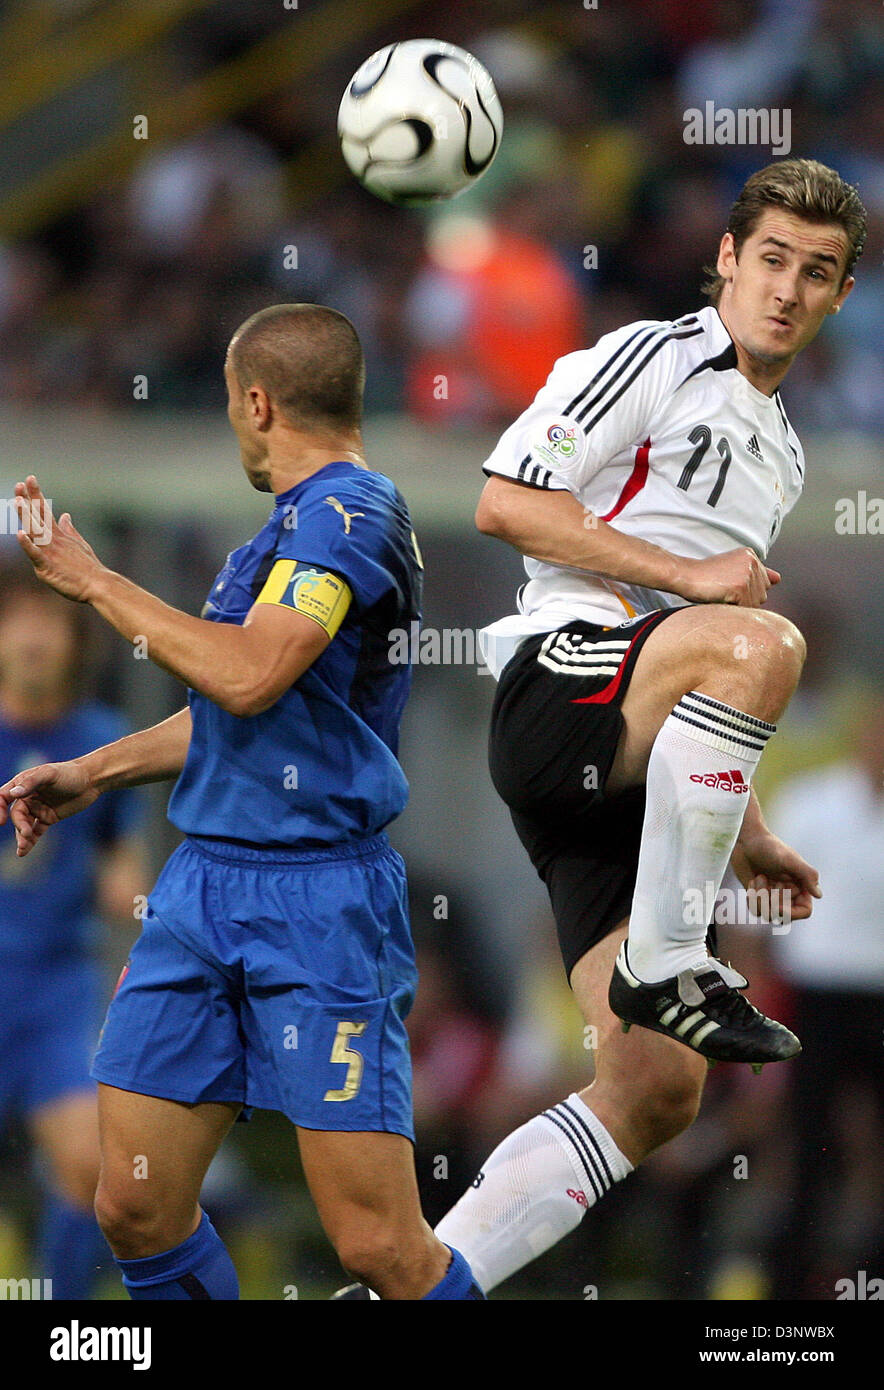 Miroslav Klose R from Germany vies with Fabio Cannavaro L from